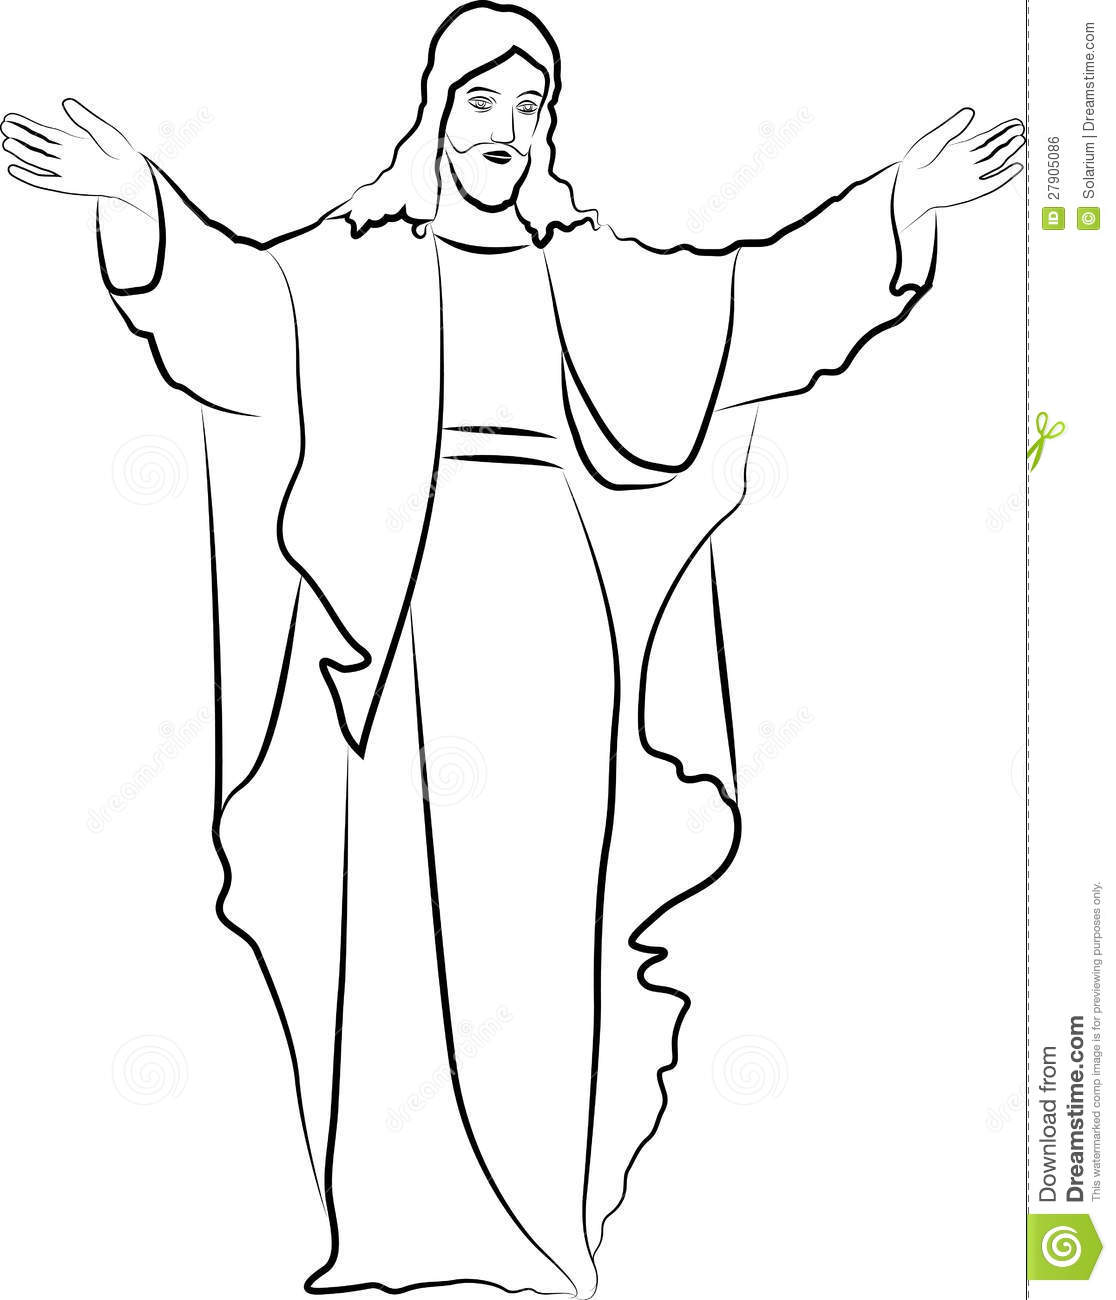 Black And White Drawing Of Jesus At Getdrawings